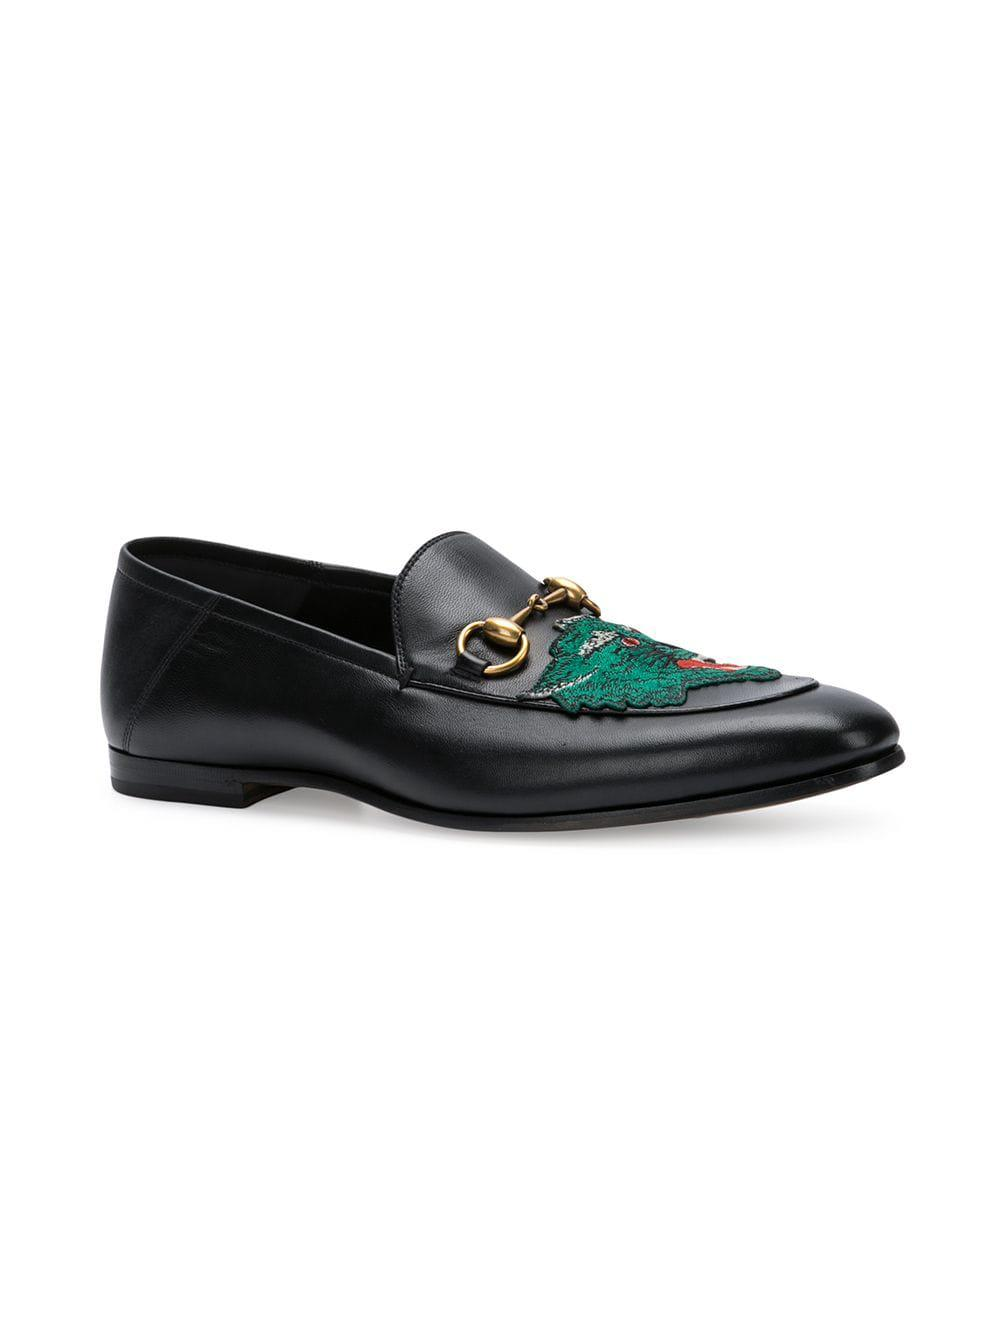 dd9bf8afd96 Gucci Panther Face Loafers in Black for Men - Lyst